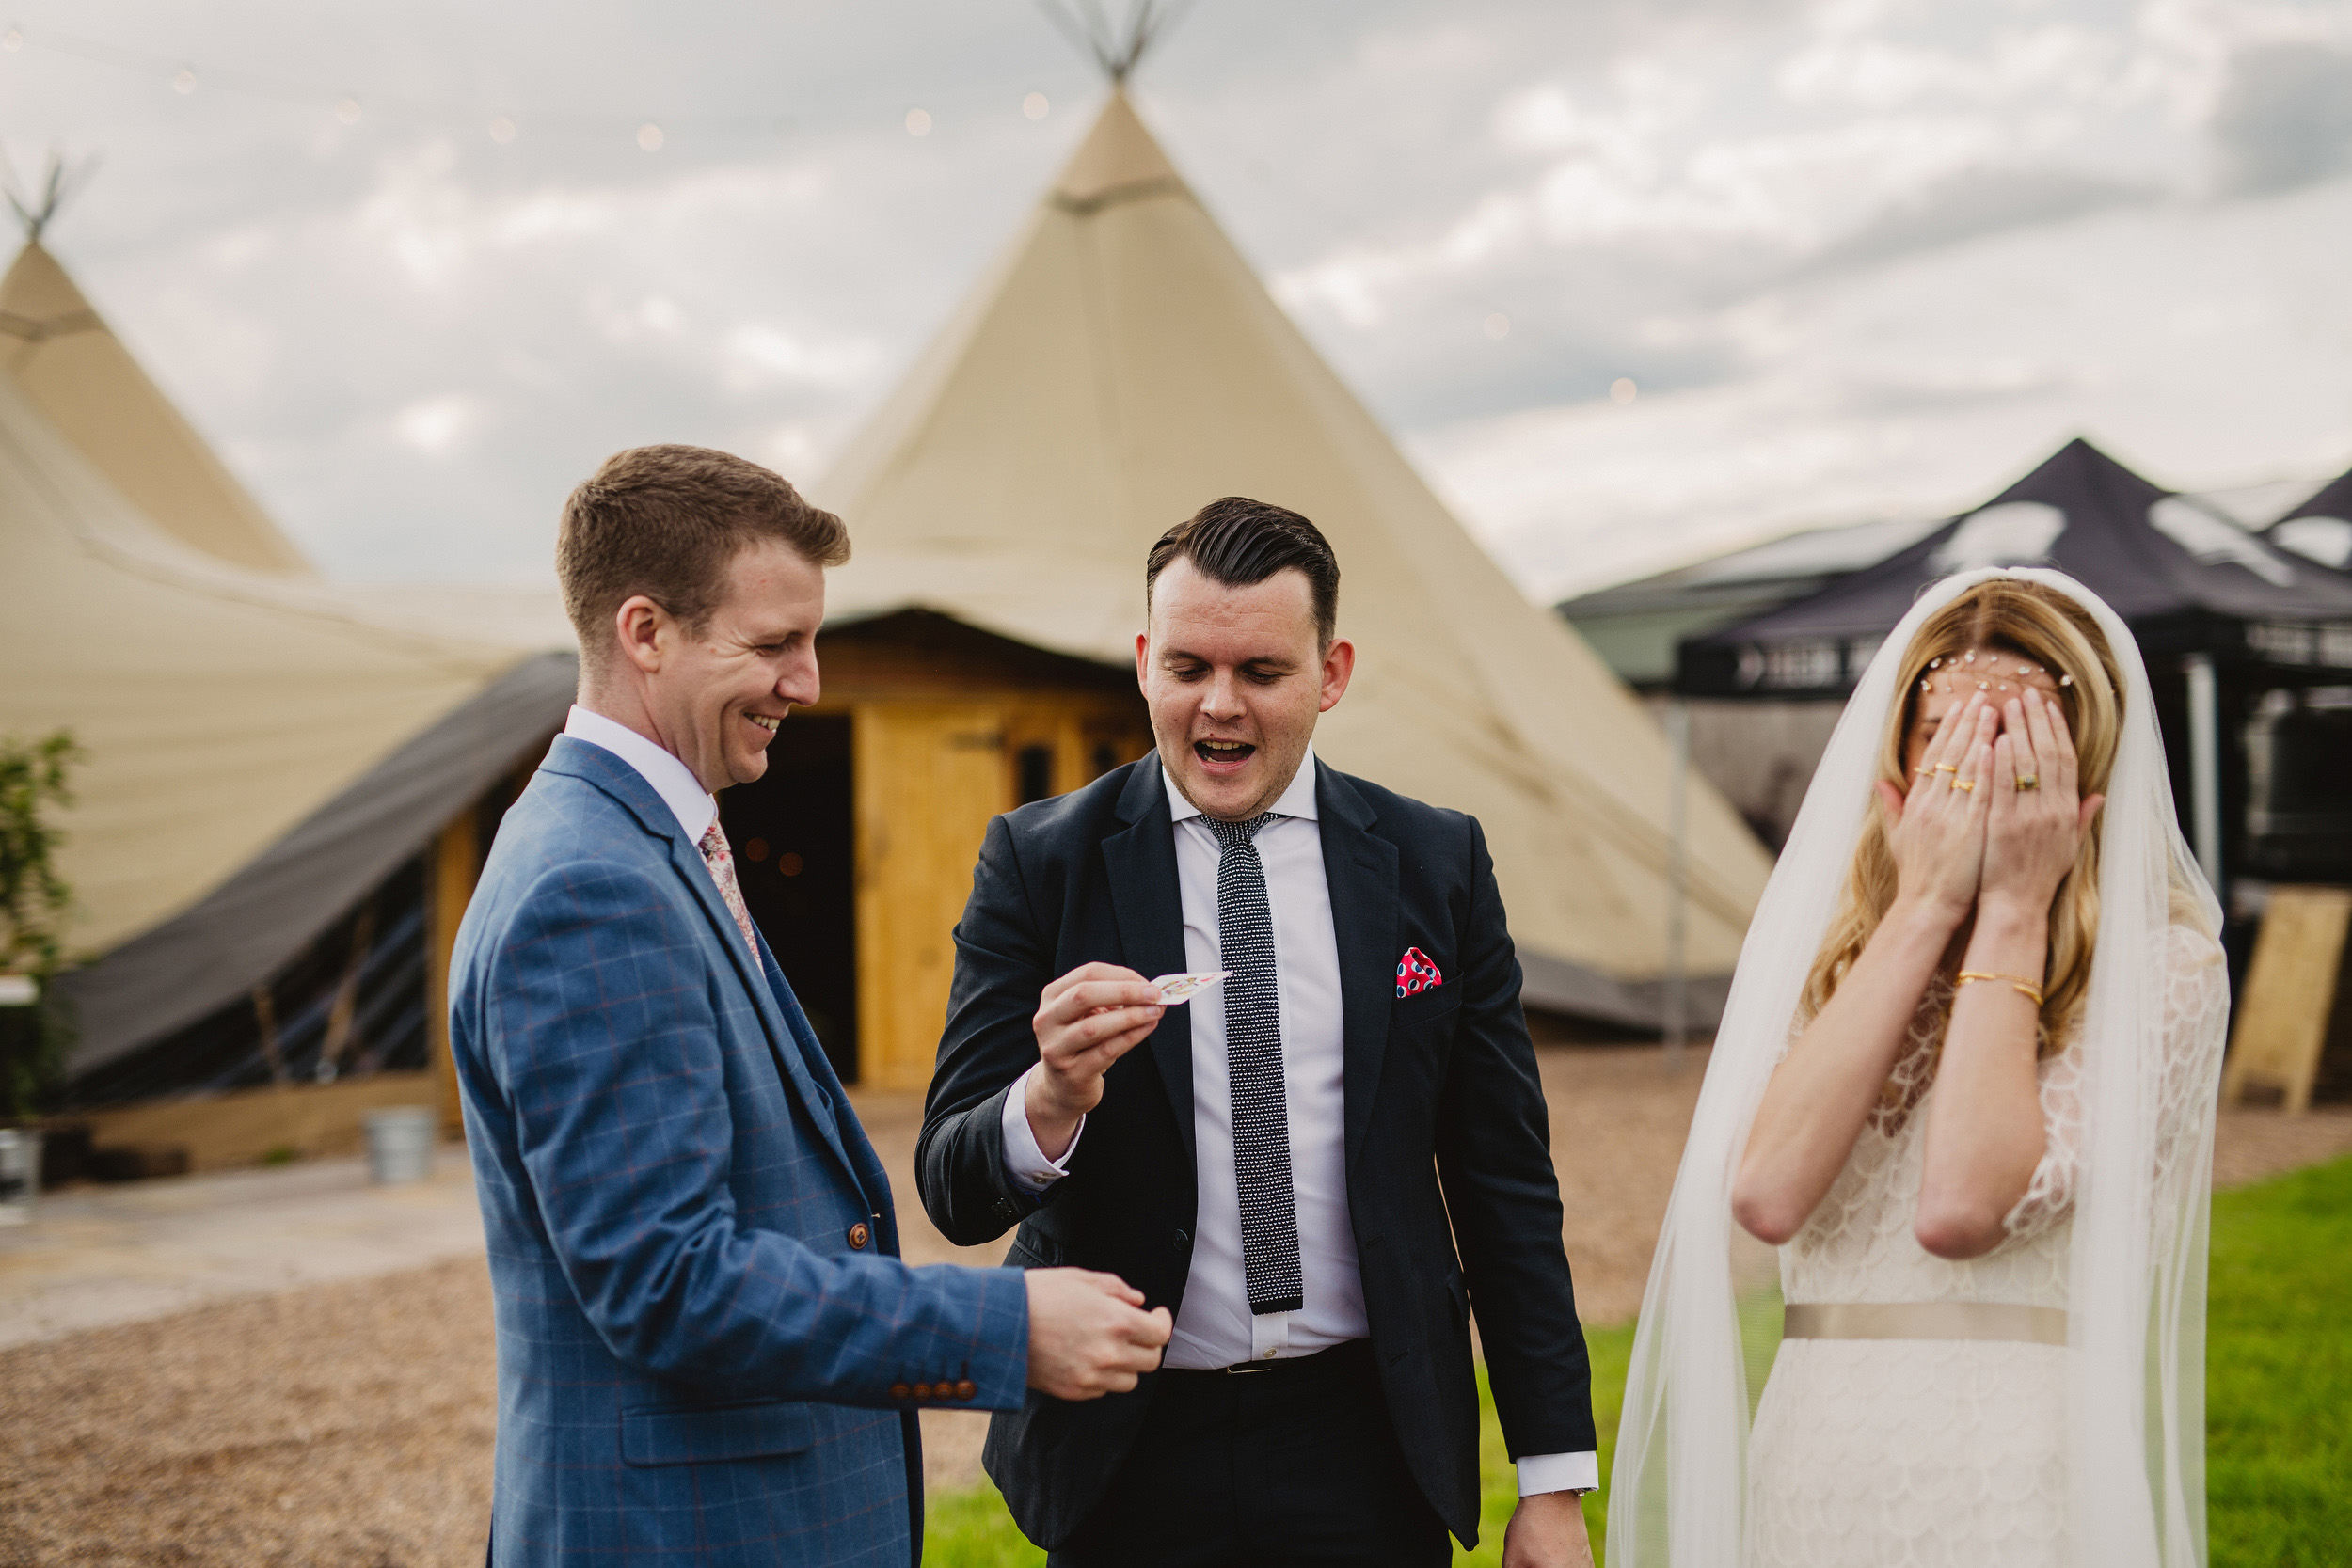 Gemma-Bohemian-Outdoor-Tipi-Wedding-Laid-Back-Relaxed-Family-Wedding-Kate-Beaumont-Astilbe-by-S6-Photography-Sheffield-36.jpg